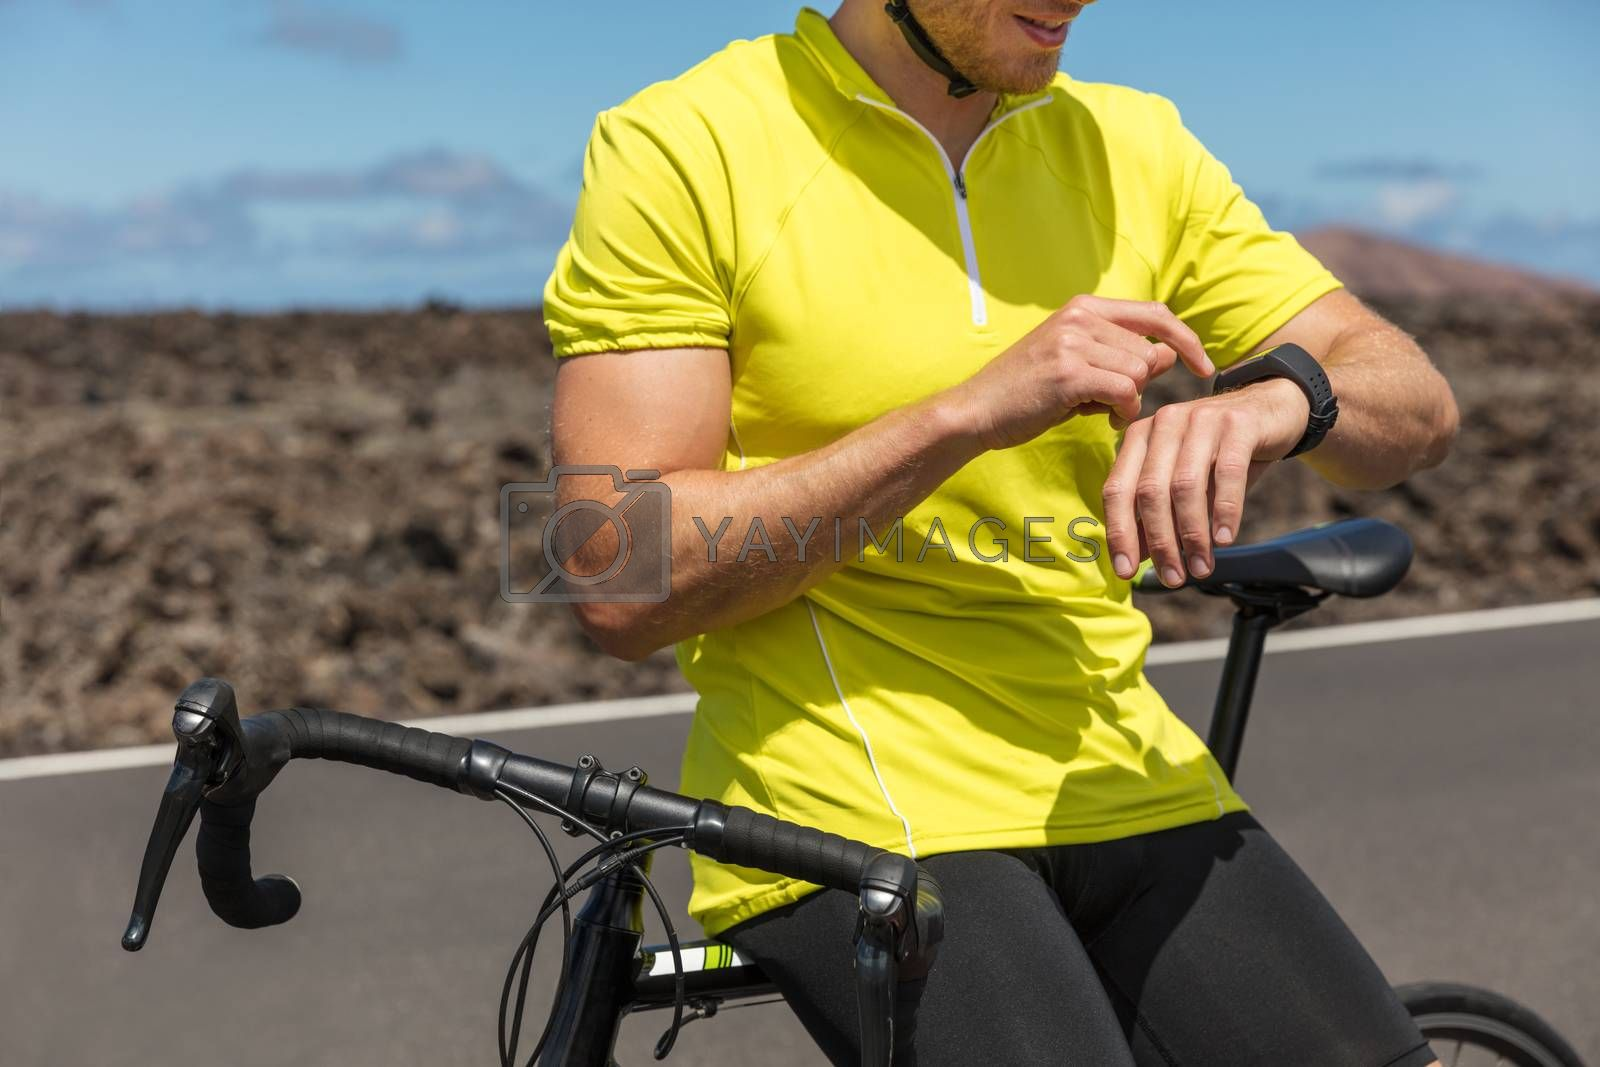 Athlete cyclist using an activity tracker gps smartwatch during biking workout training. Road bike sports man using his watch app for fitness tracking. Healthy lifestyle.